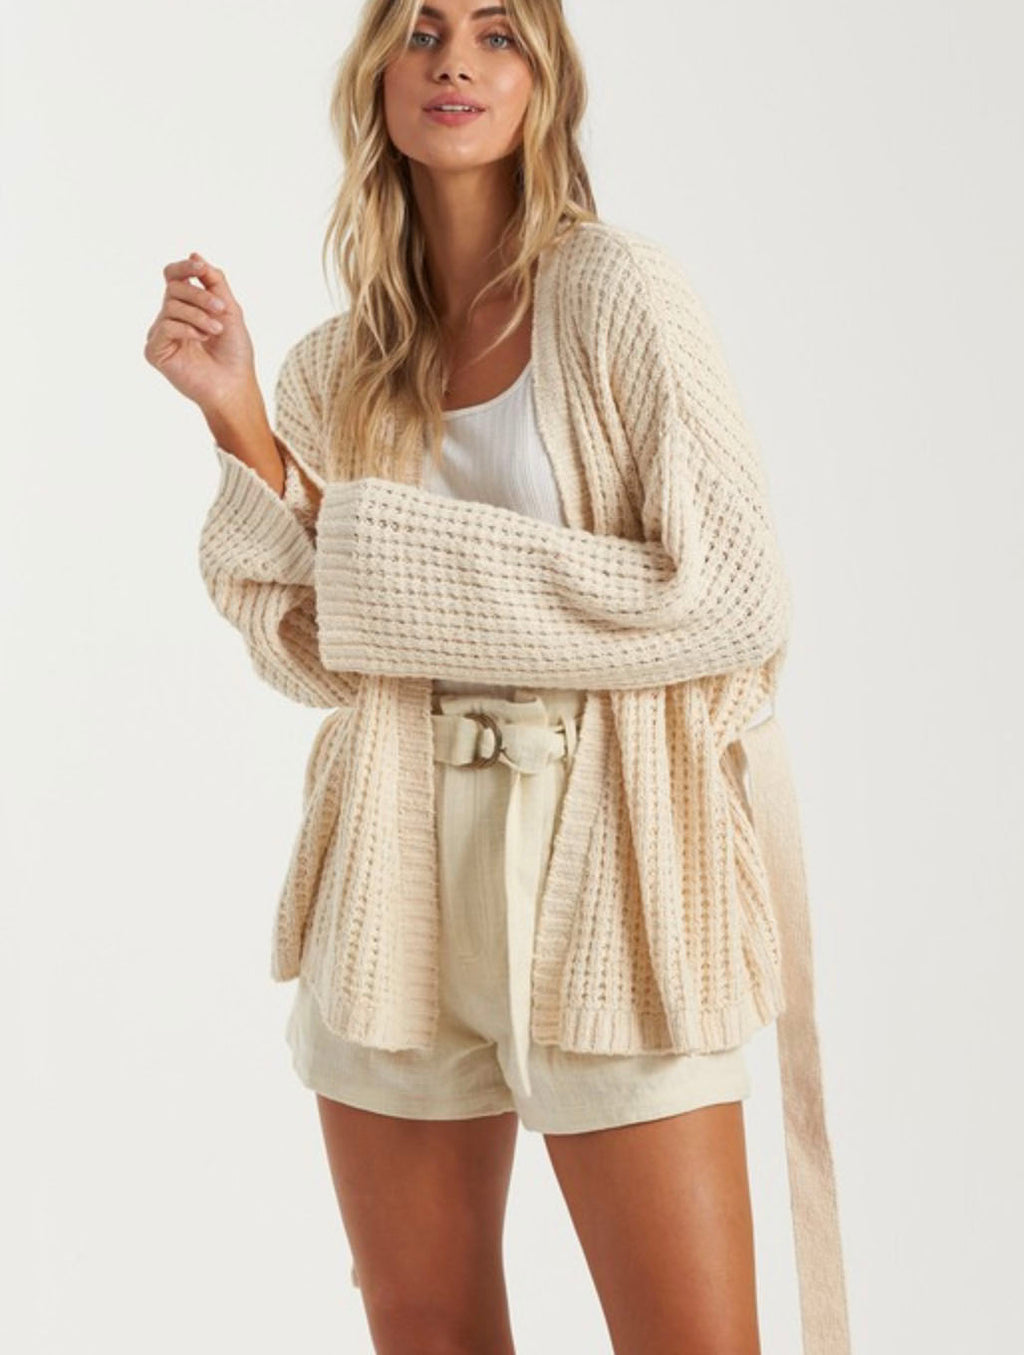 Billabong Those Days Cardigan in White Cap